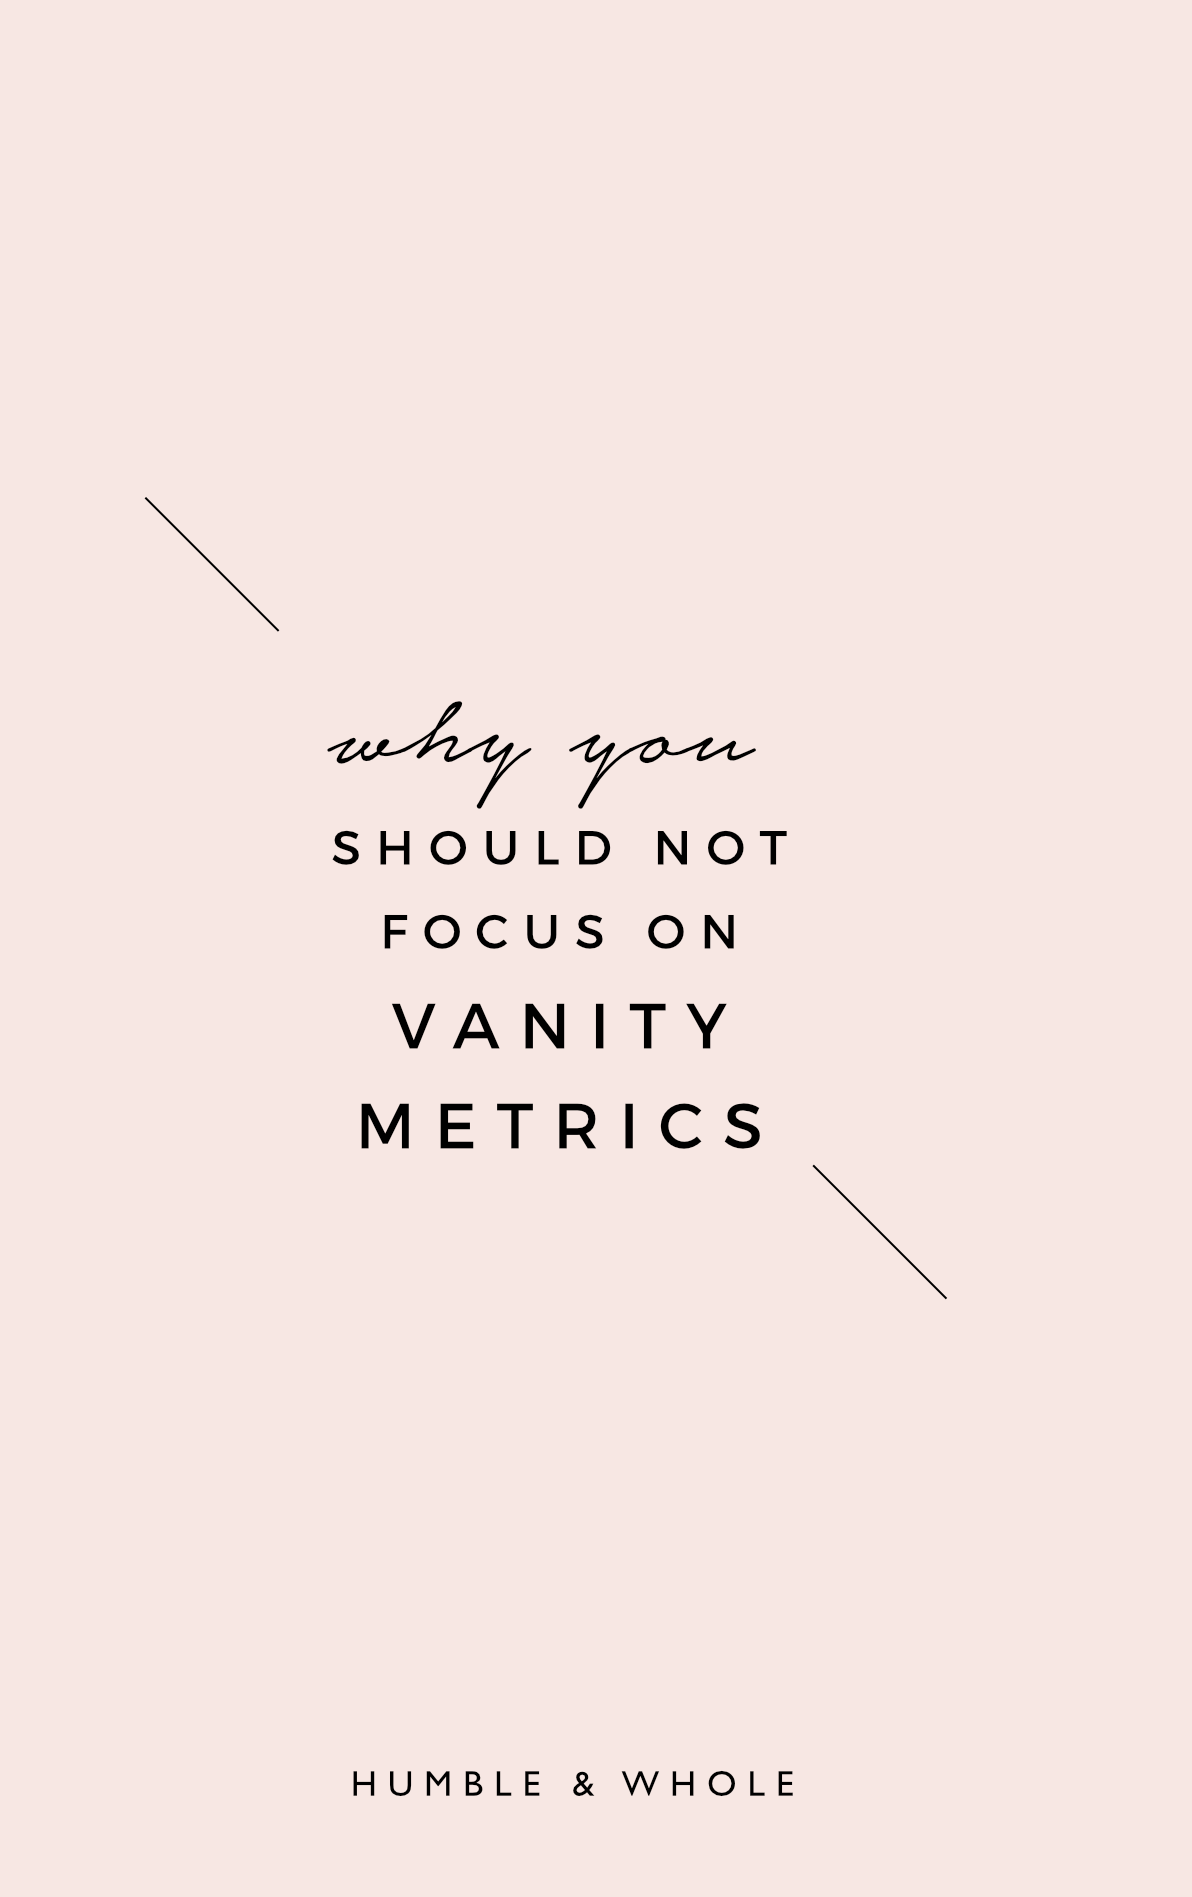 Are you a blogger or creative entrepreneur who can't get enough of checking your analytics? Do you find yourself frequently checking your page views, your mailing list subscribers, and your following across your social media? You don't want to miss our latest post on the blog, in which we're discussing why you shouldn't be obsessing over vanity metrics, and what you should pay attention to instead to develop a successful brand.